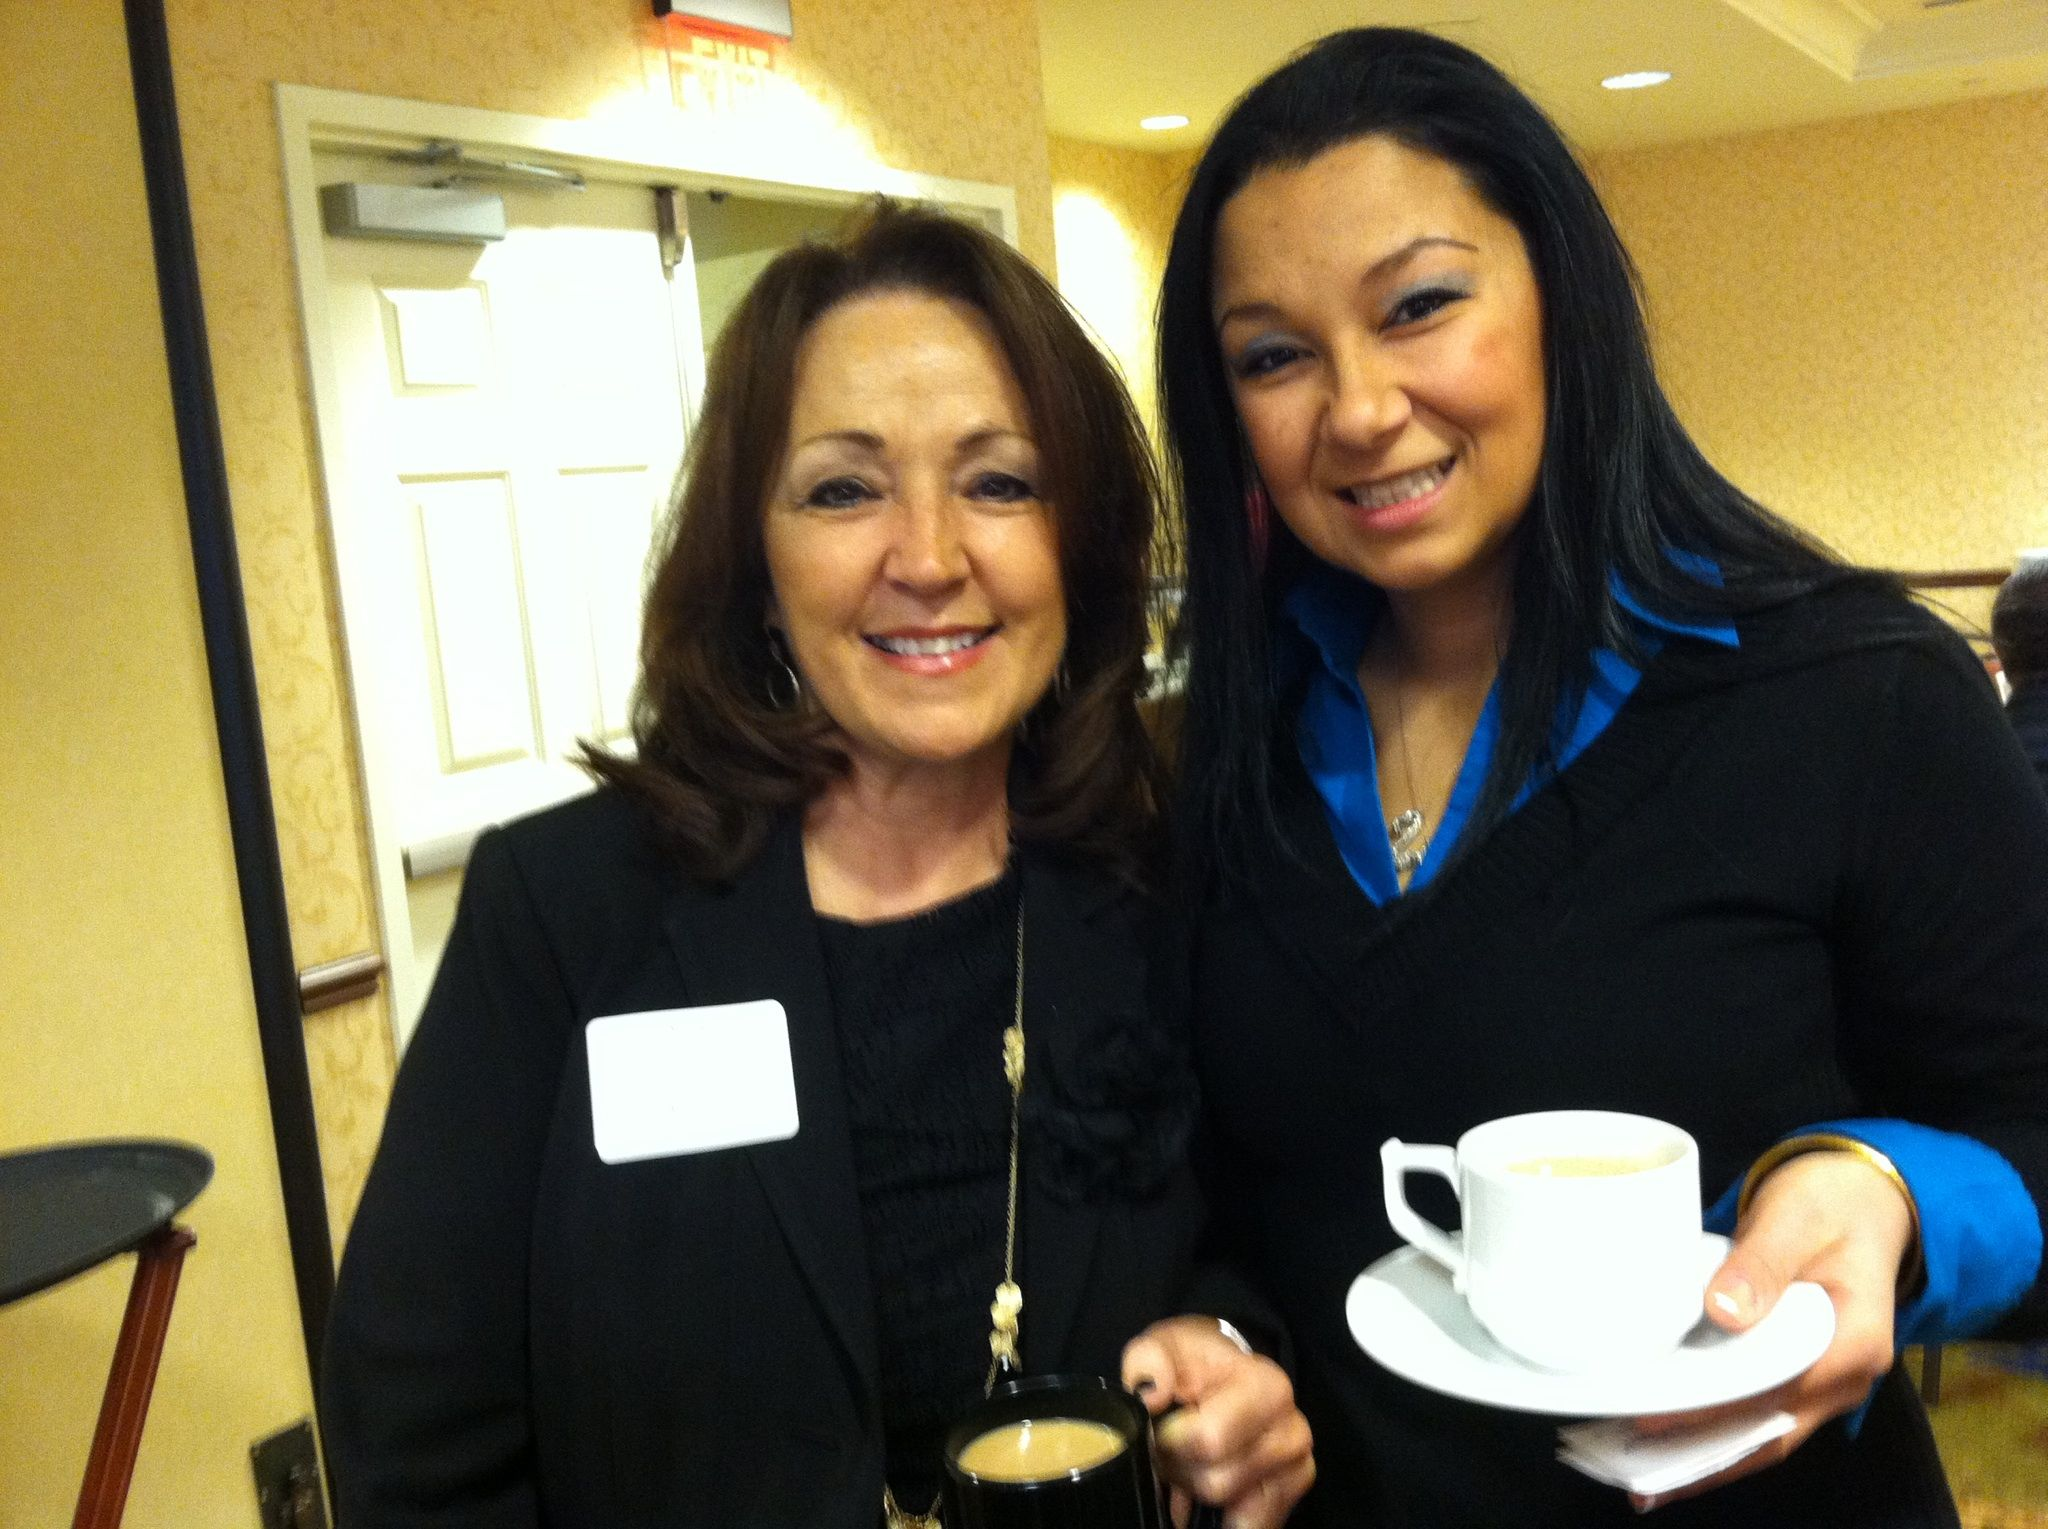 Kathy Caisse (Residence Inn Boston Westford) and Michelle Rattanavong (All Points Limousine)  networking at a Fidelity Bank Breakfast